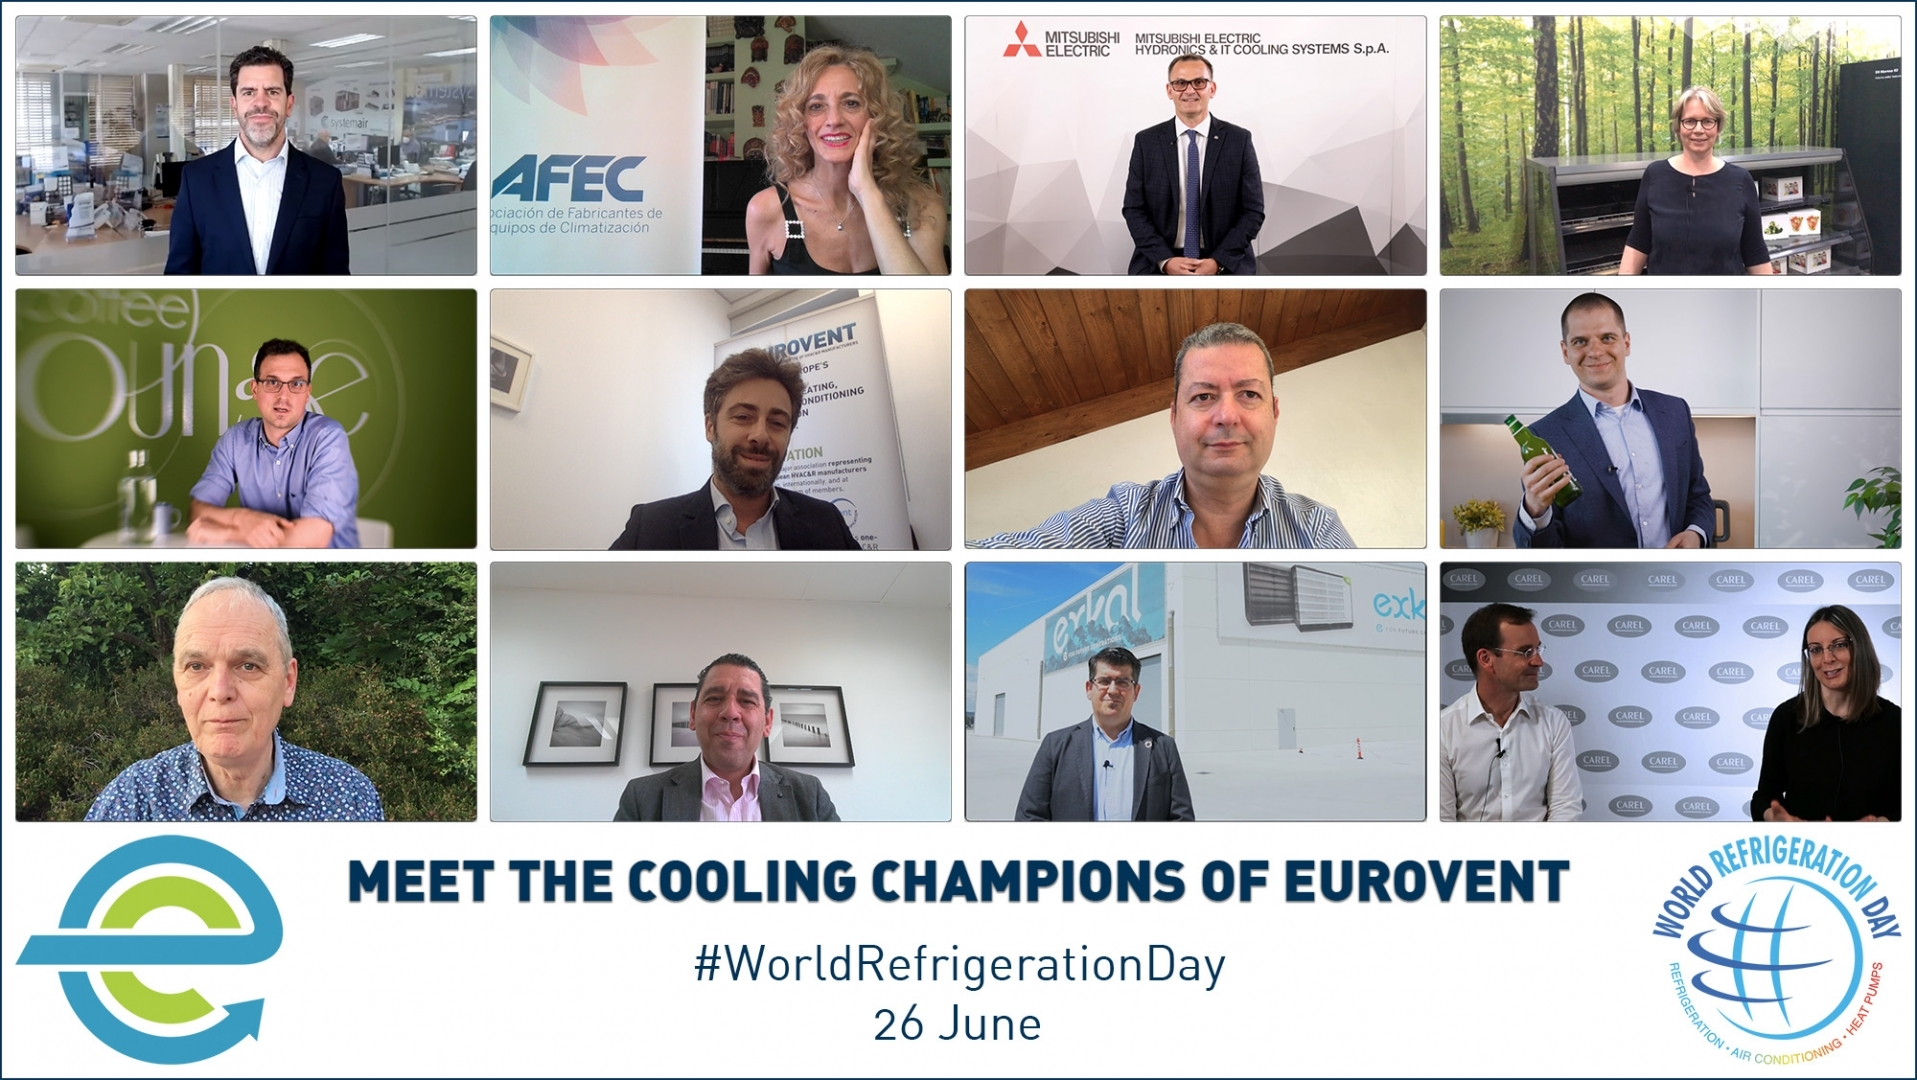 2021 - Meet the Cooling Champions of Eurovent